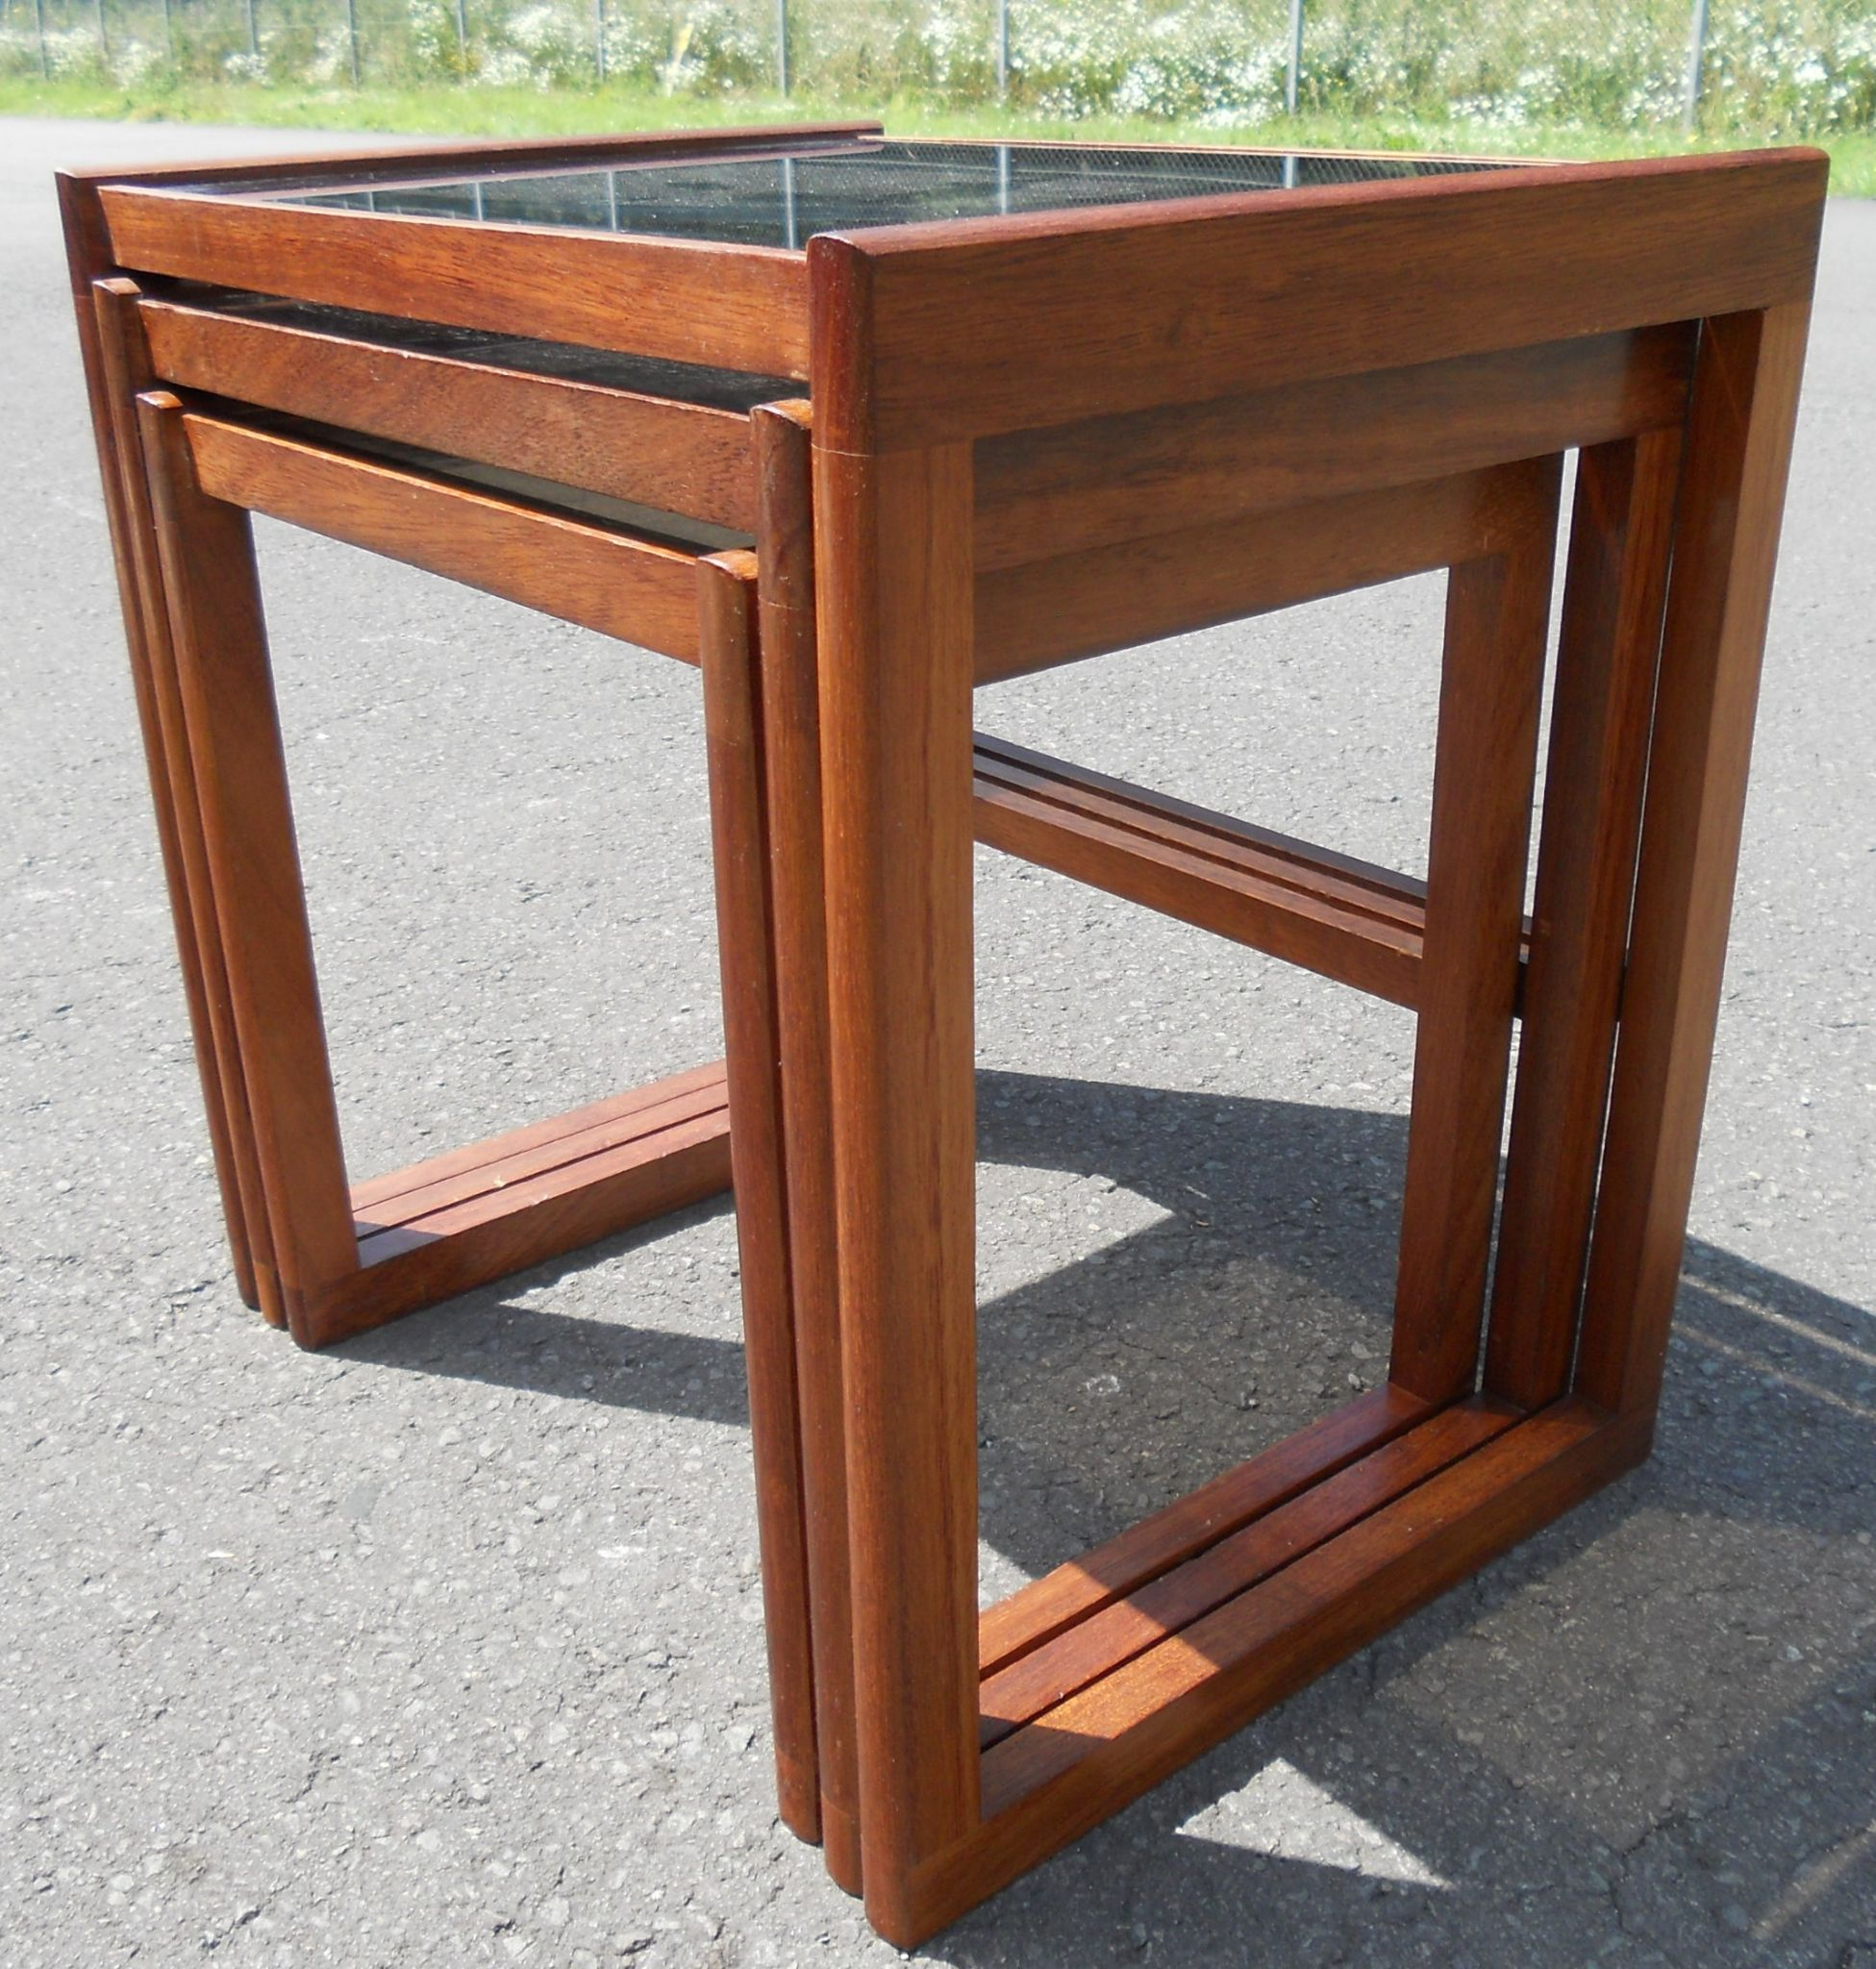 Retro light teak circular glass top coffee table nest of tables by - Retro Teak Glass Top Nest Of Tables